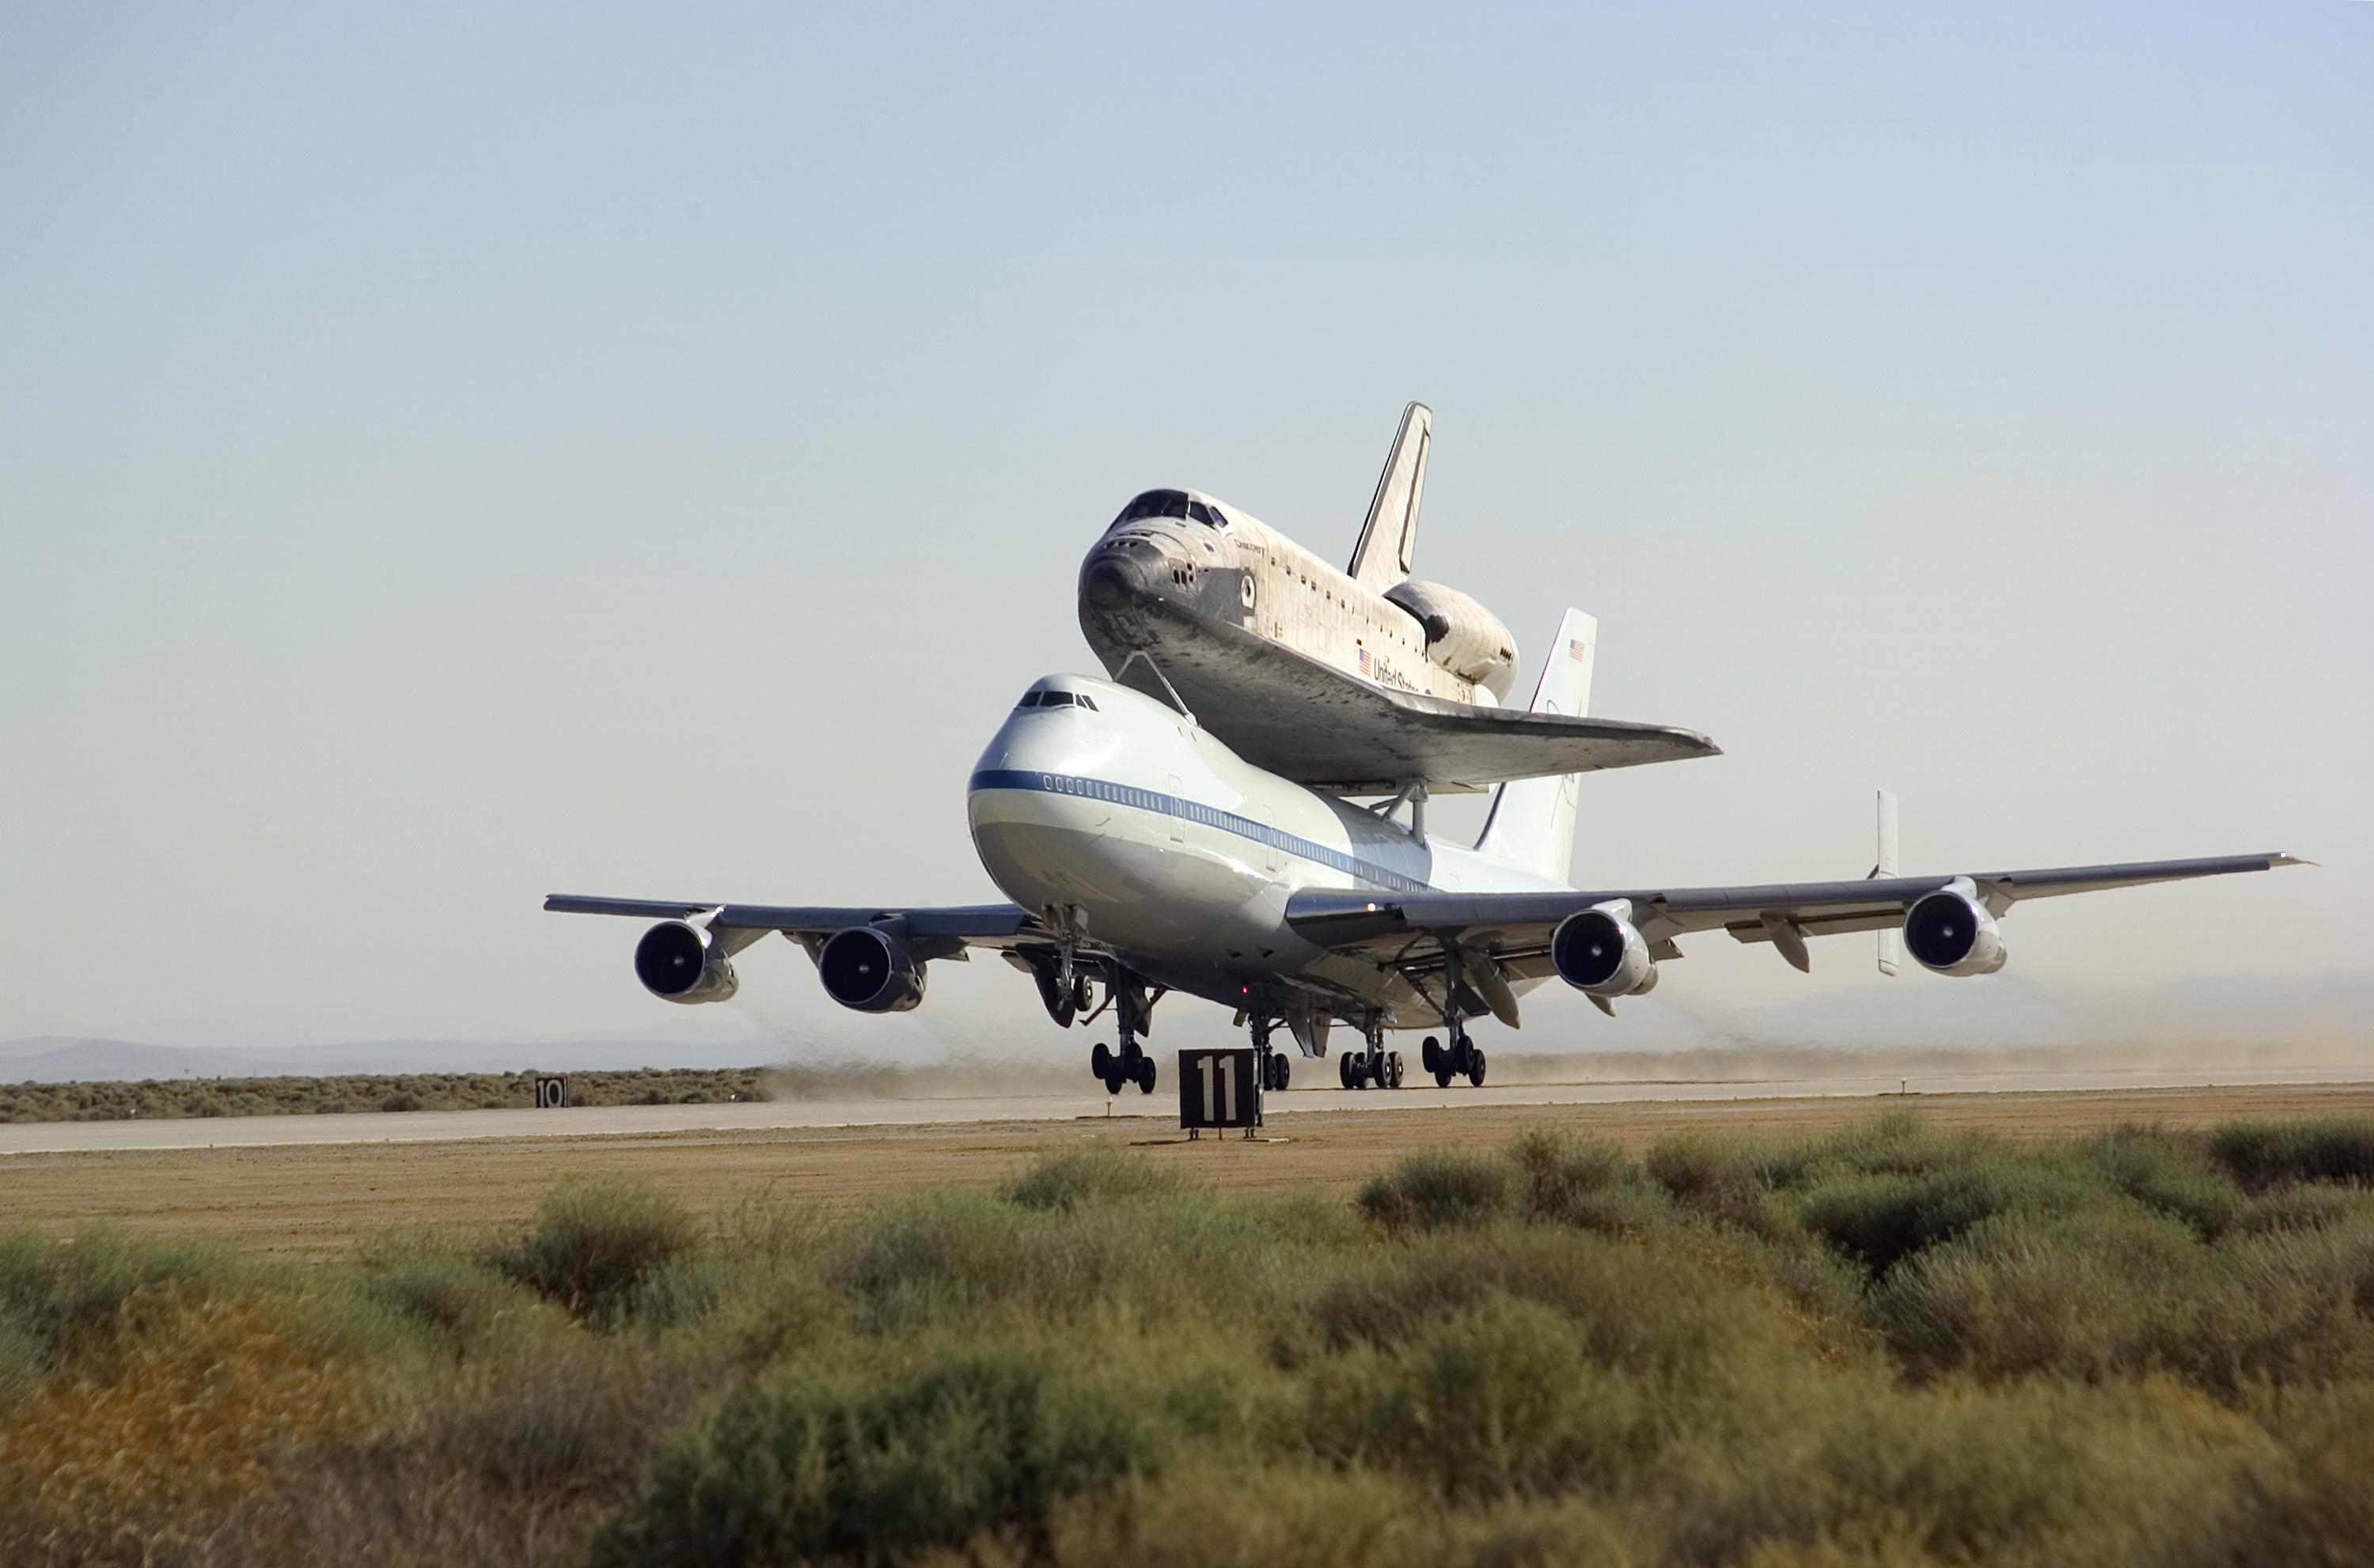 kelly afb space shuttle carrier aircraft - photo #19